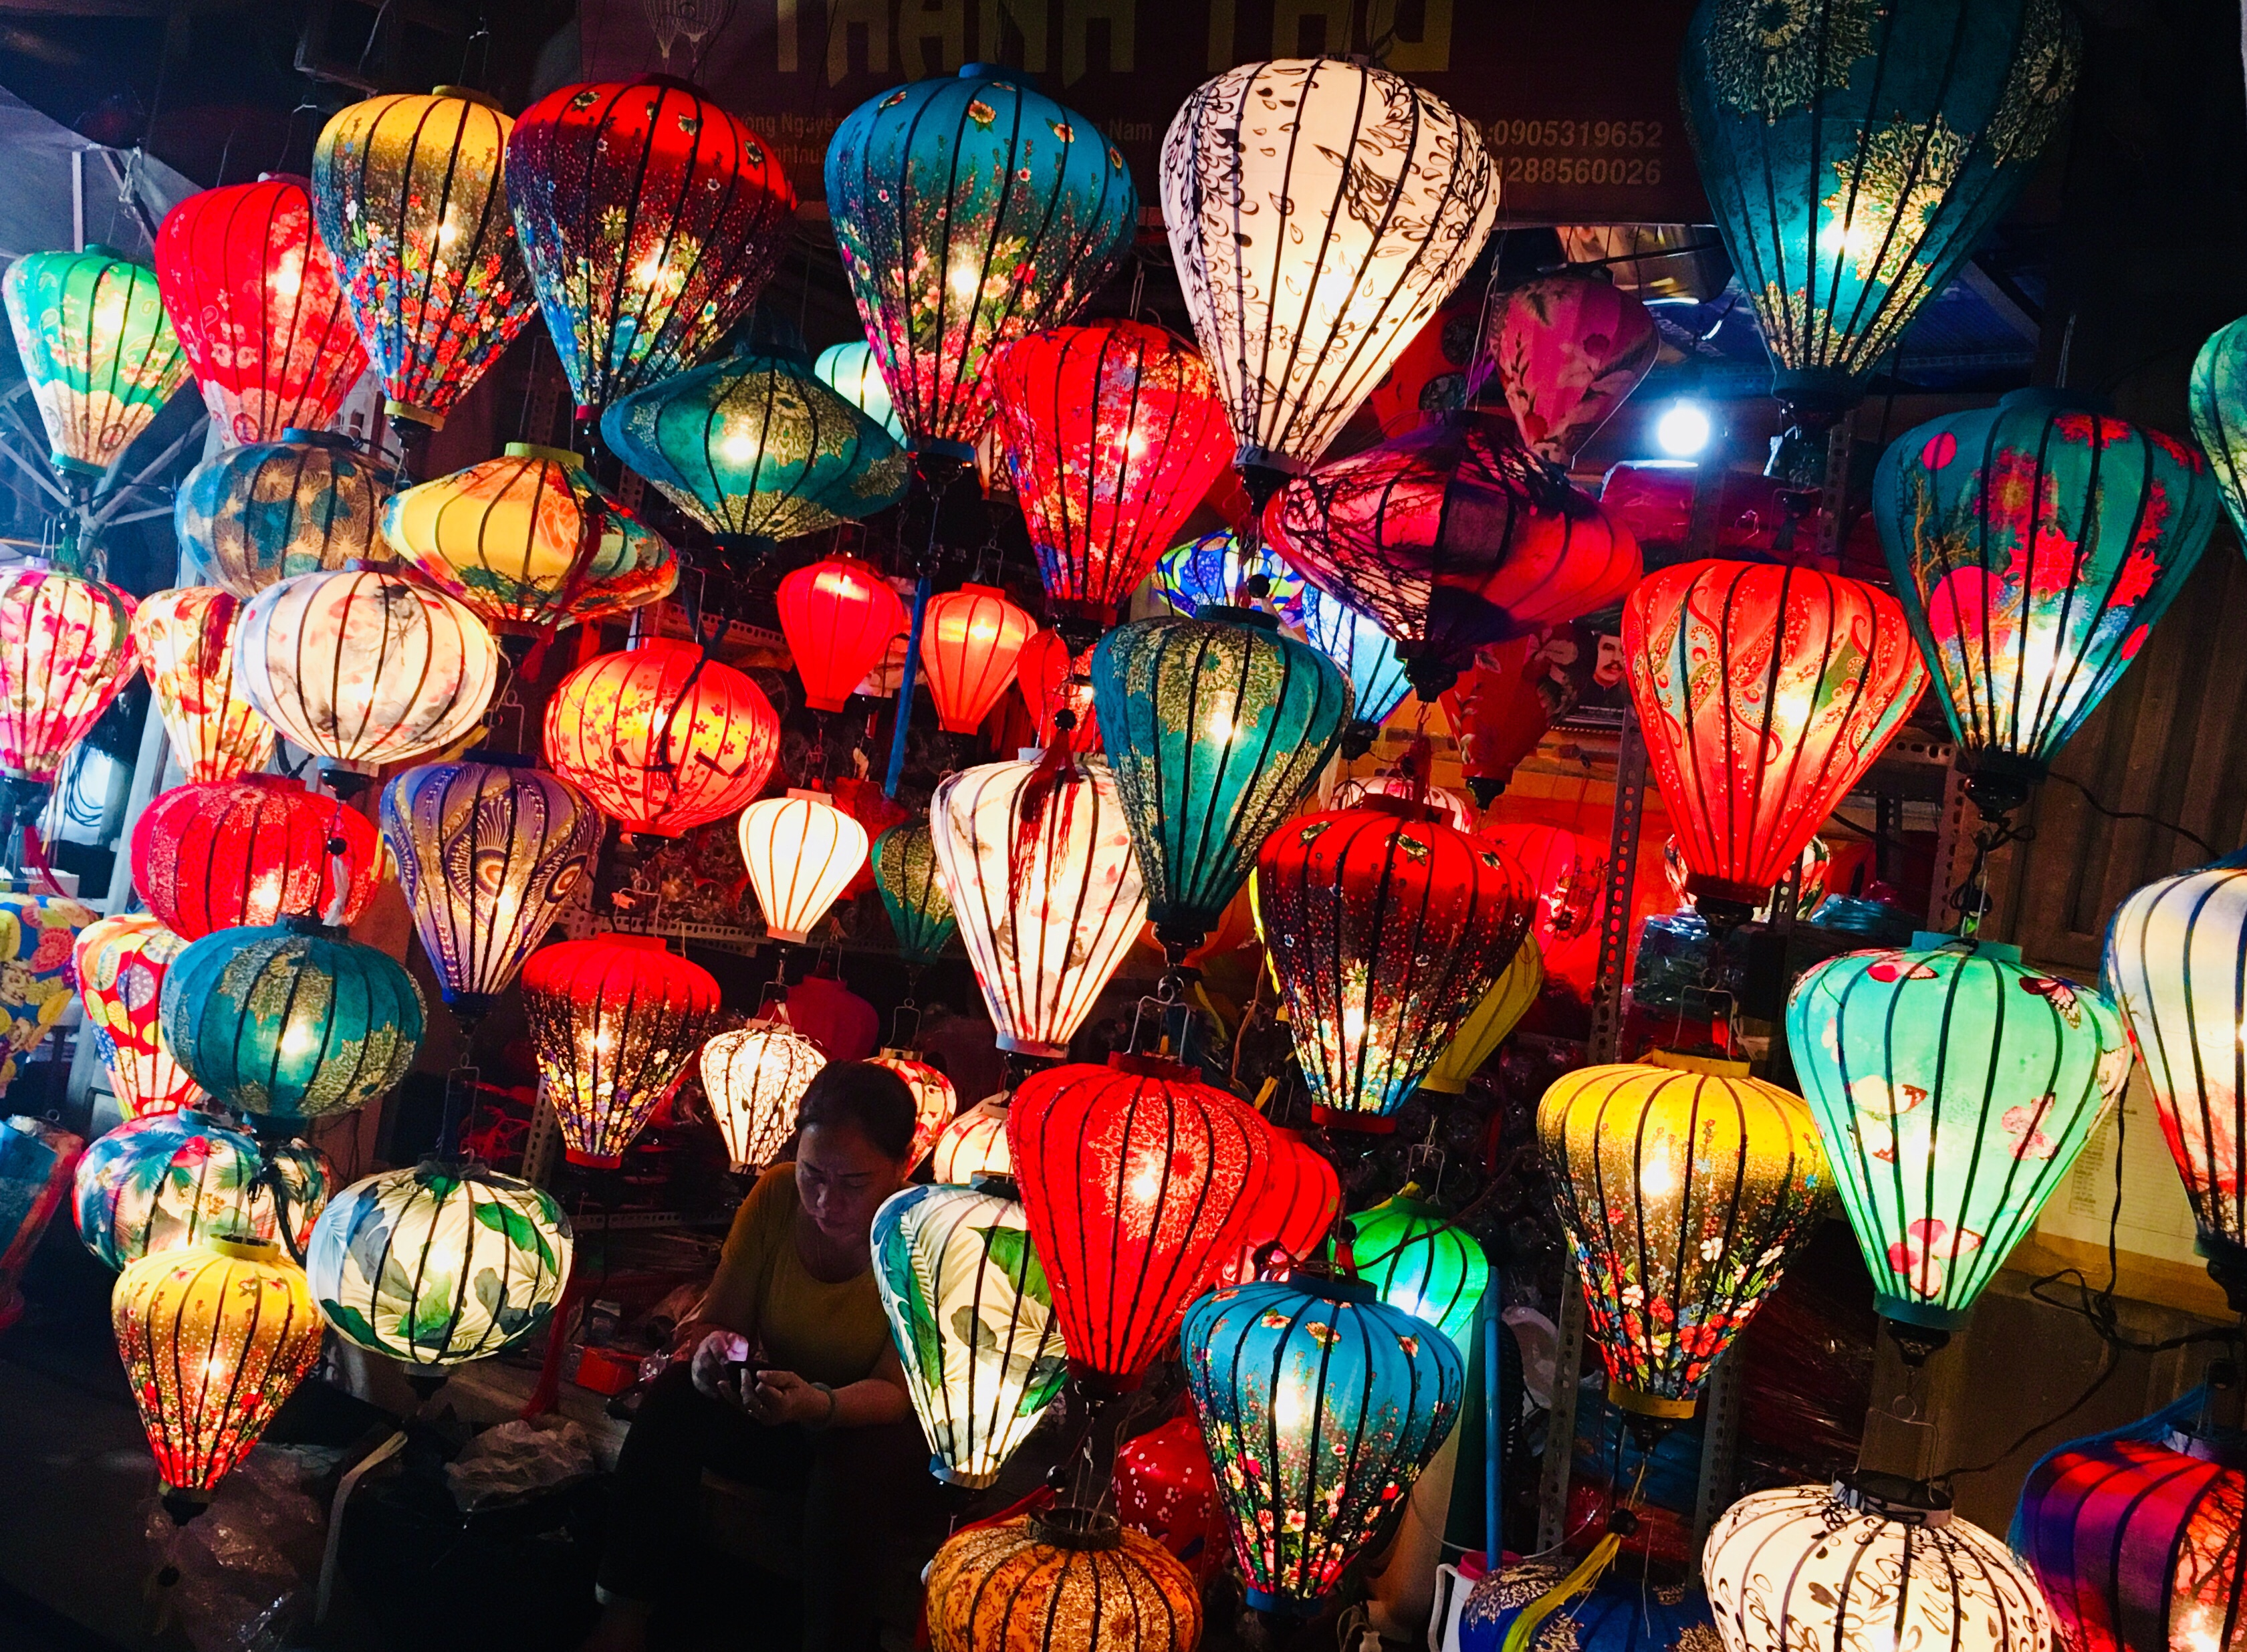 Beautiful glowing silk Vietnamese lanterns for sale at a street vendor in Hoi An Vietnam